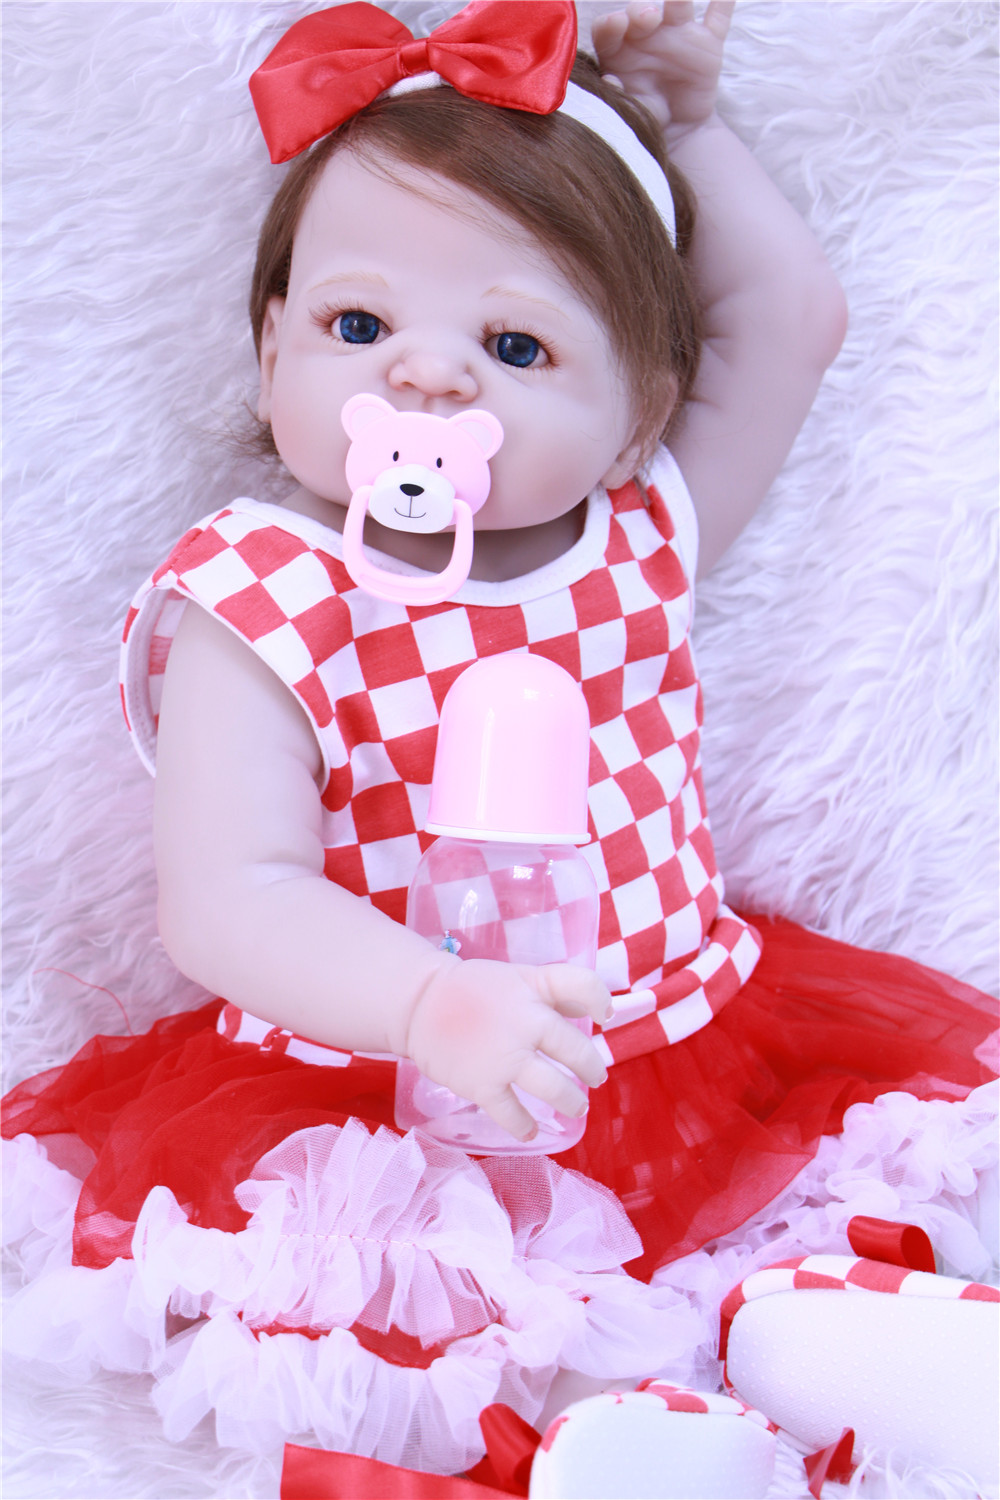 Baby reborn girl toy dolls NPK full body silicone reborn baby dolls  23 new born babies princess dolls  bonecas Baby reborn girl toy dolls NPK full body silicone reborn baby dolls  23 new born babies princess dolls  bonecas